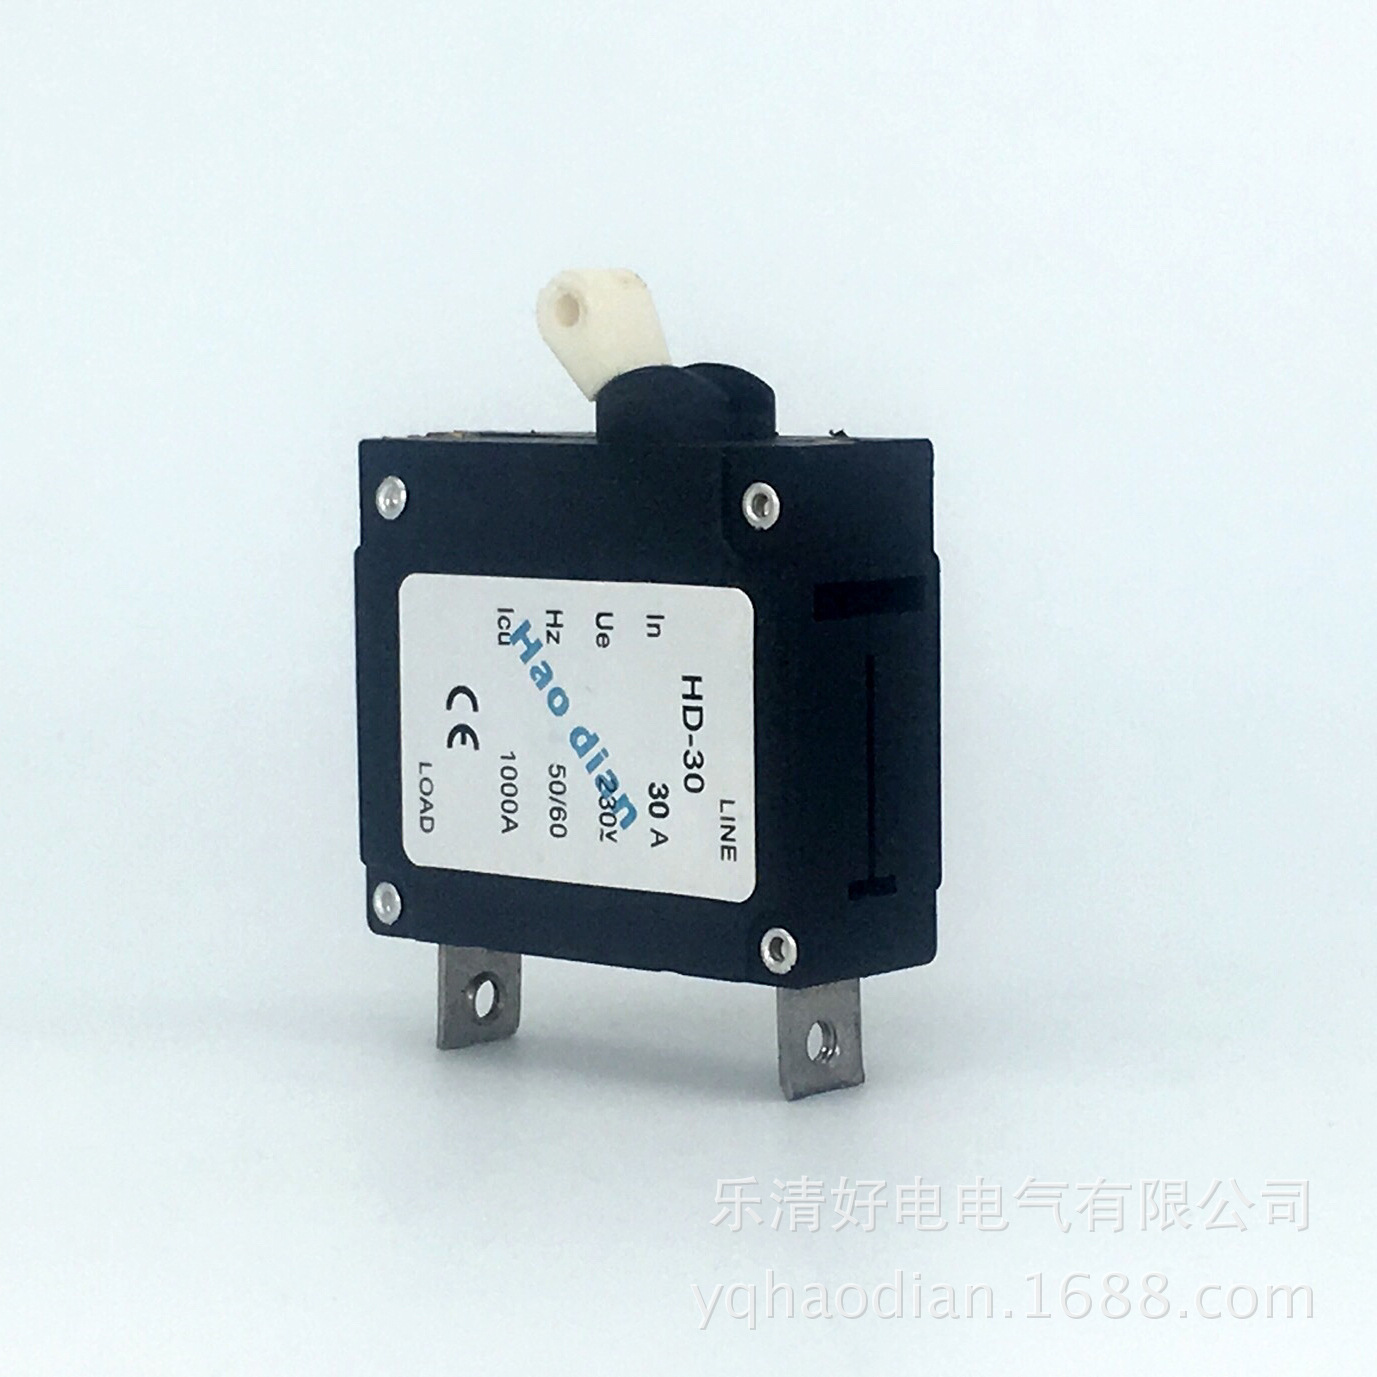 цена на 10pcs Hydraulic electromagnetic circuit breaker hd-30 1P/23A device protects the over-magnetic circuit breaker